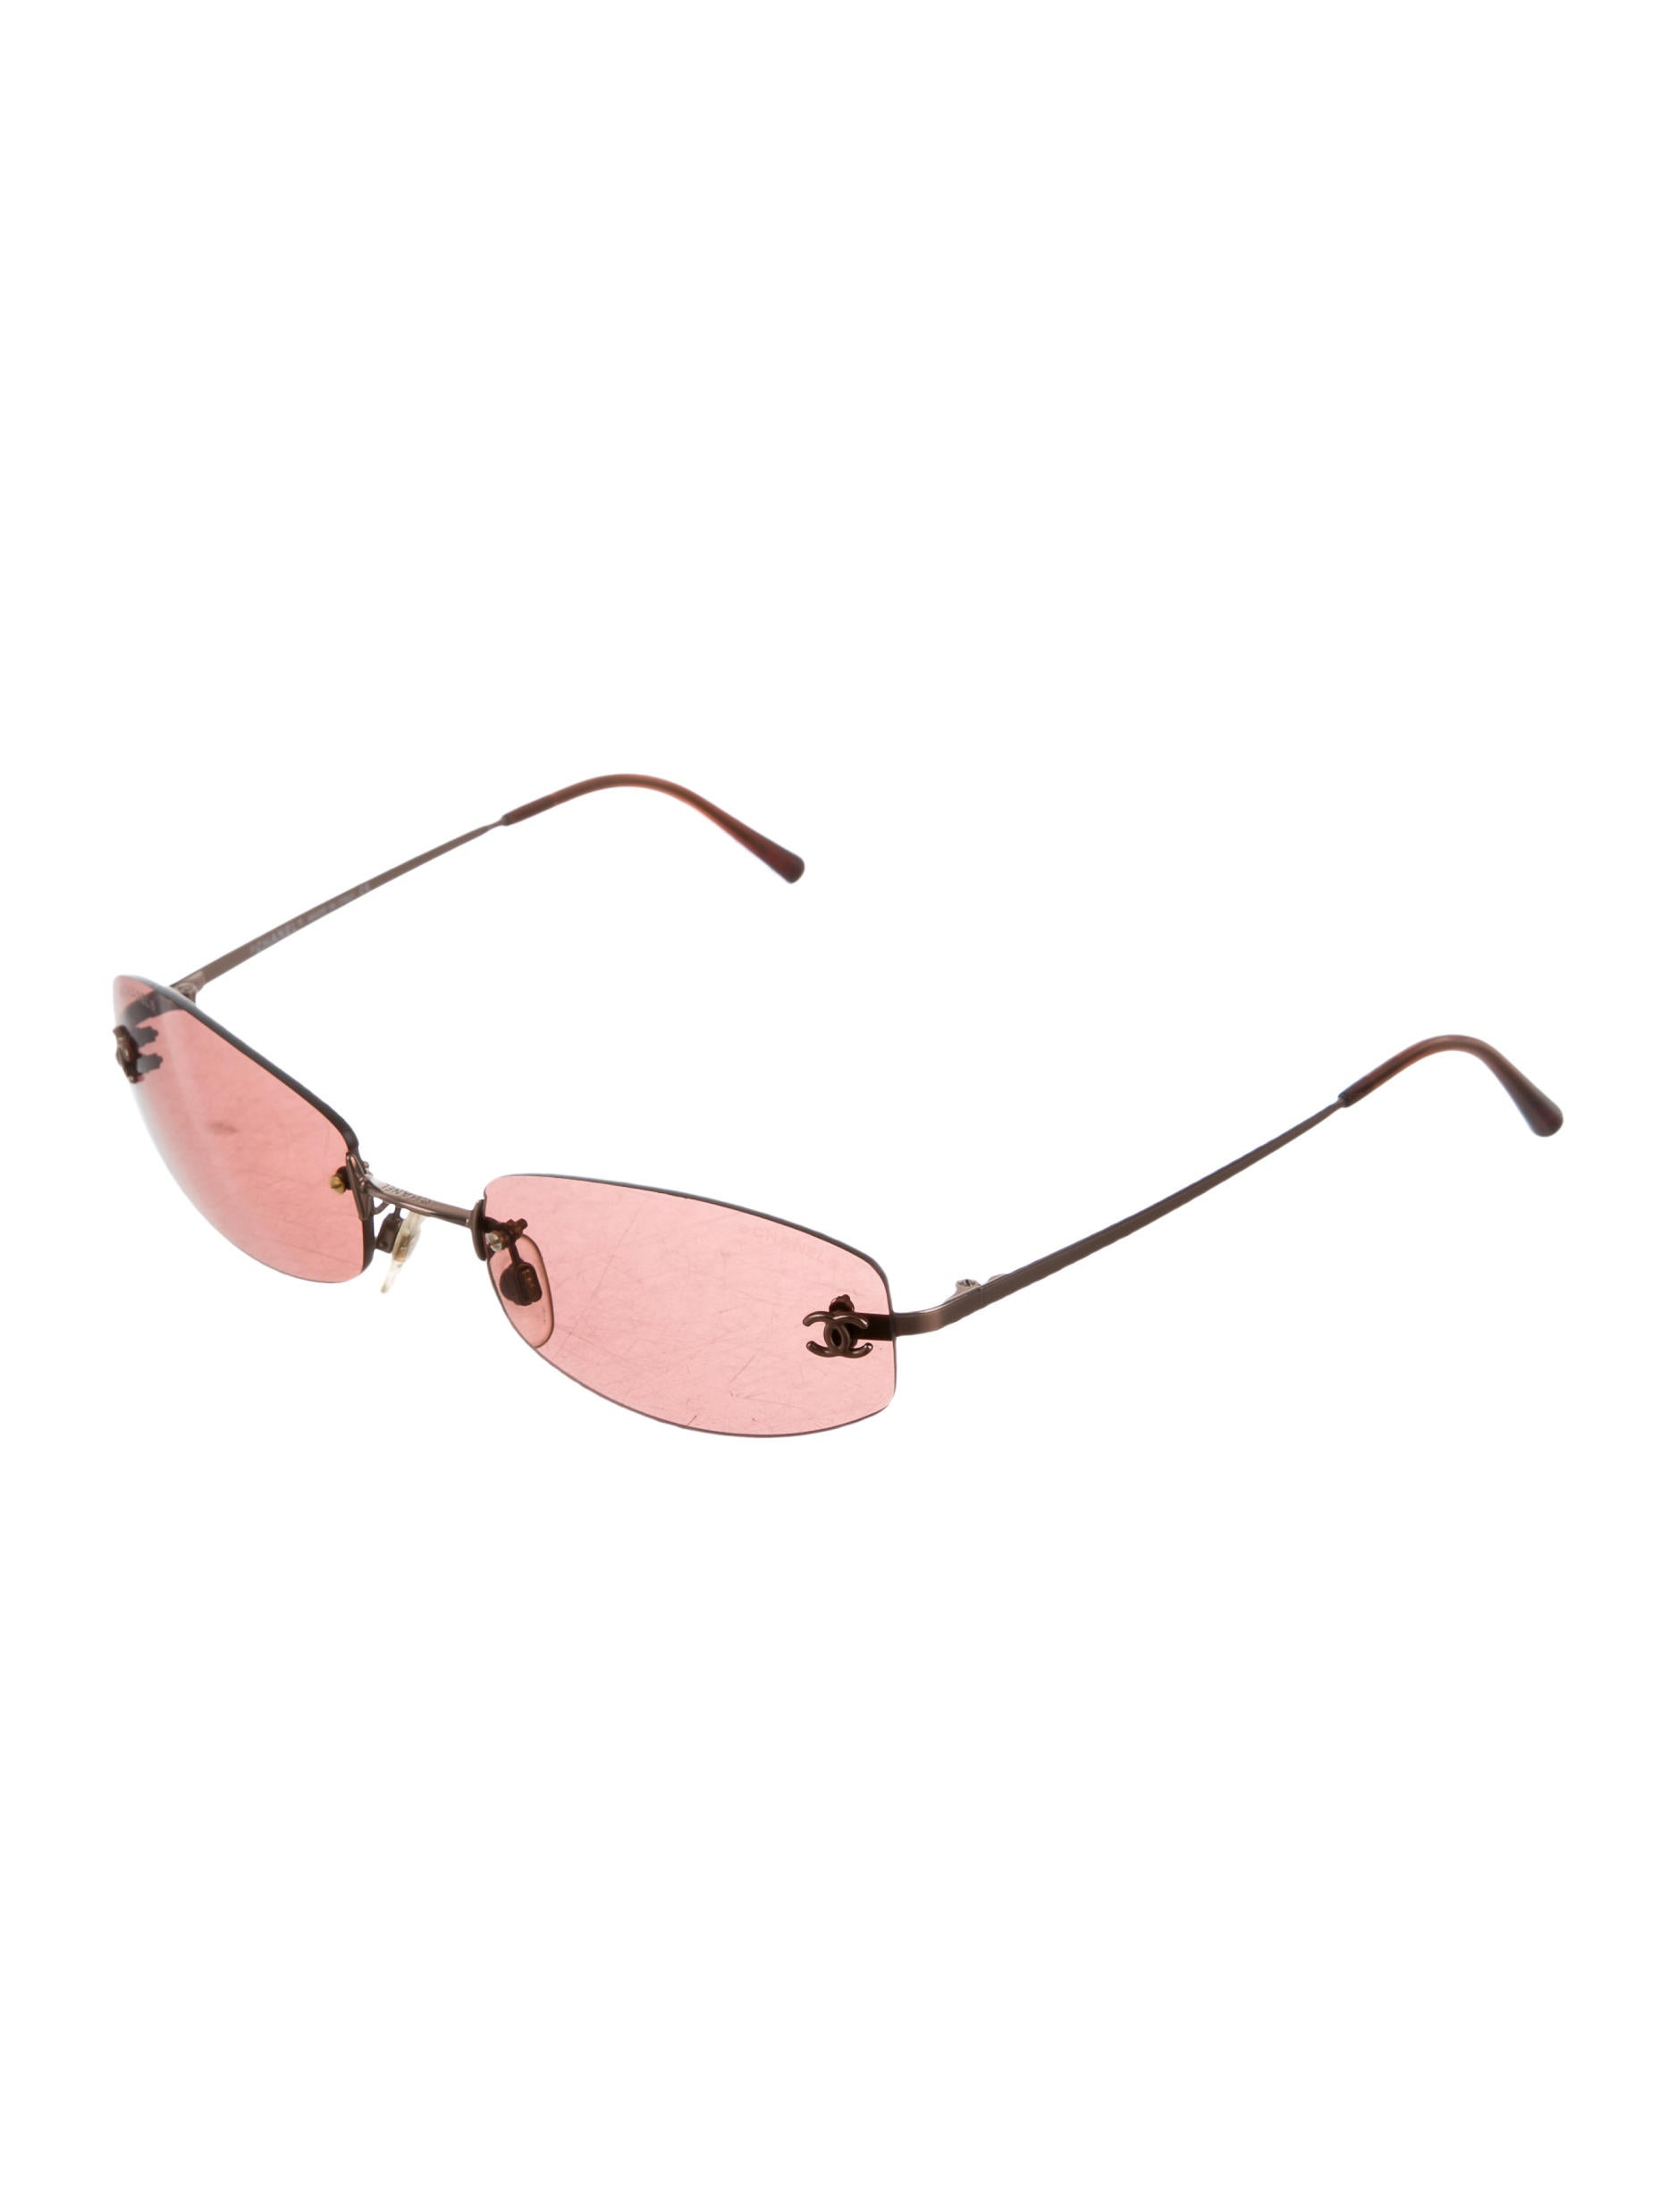 b32deb96713de Chanel Rimless CC Sunglasses - Accessories - CHA153521